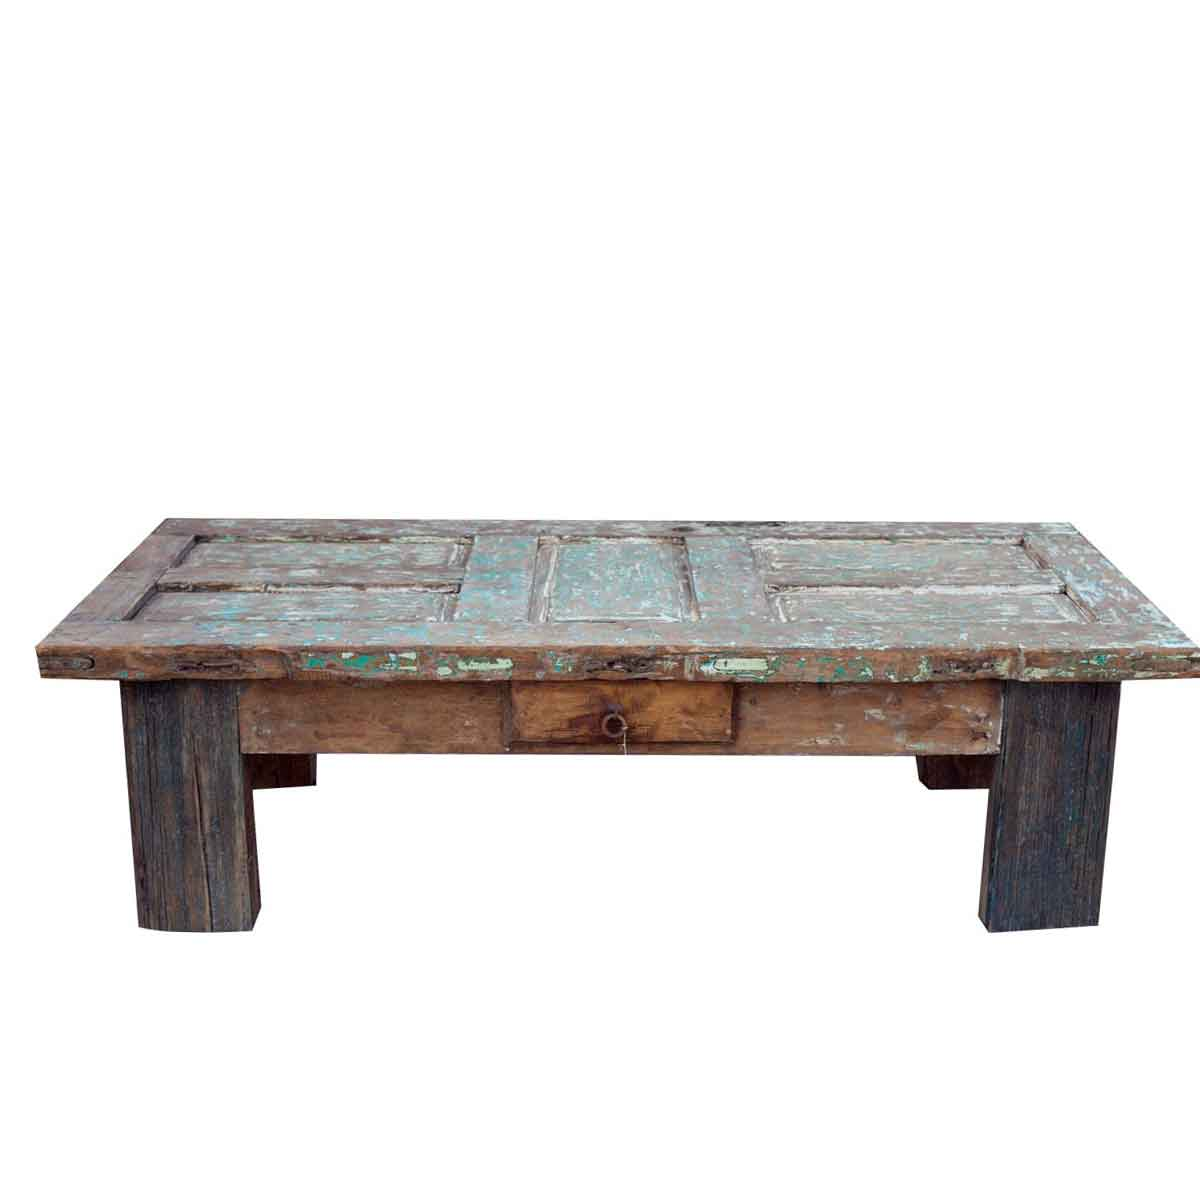 Order blanco reclaimed coffee table online crafted from a white reclaimed barn door Coffee tables online